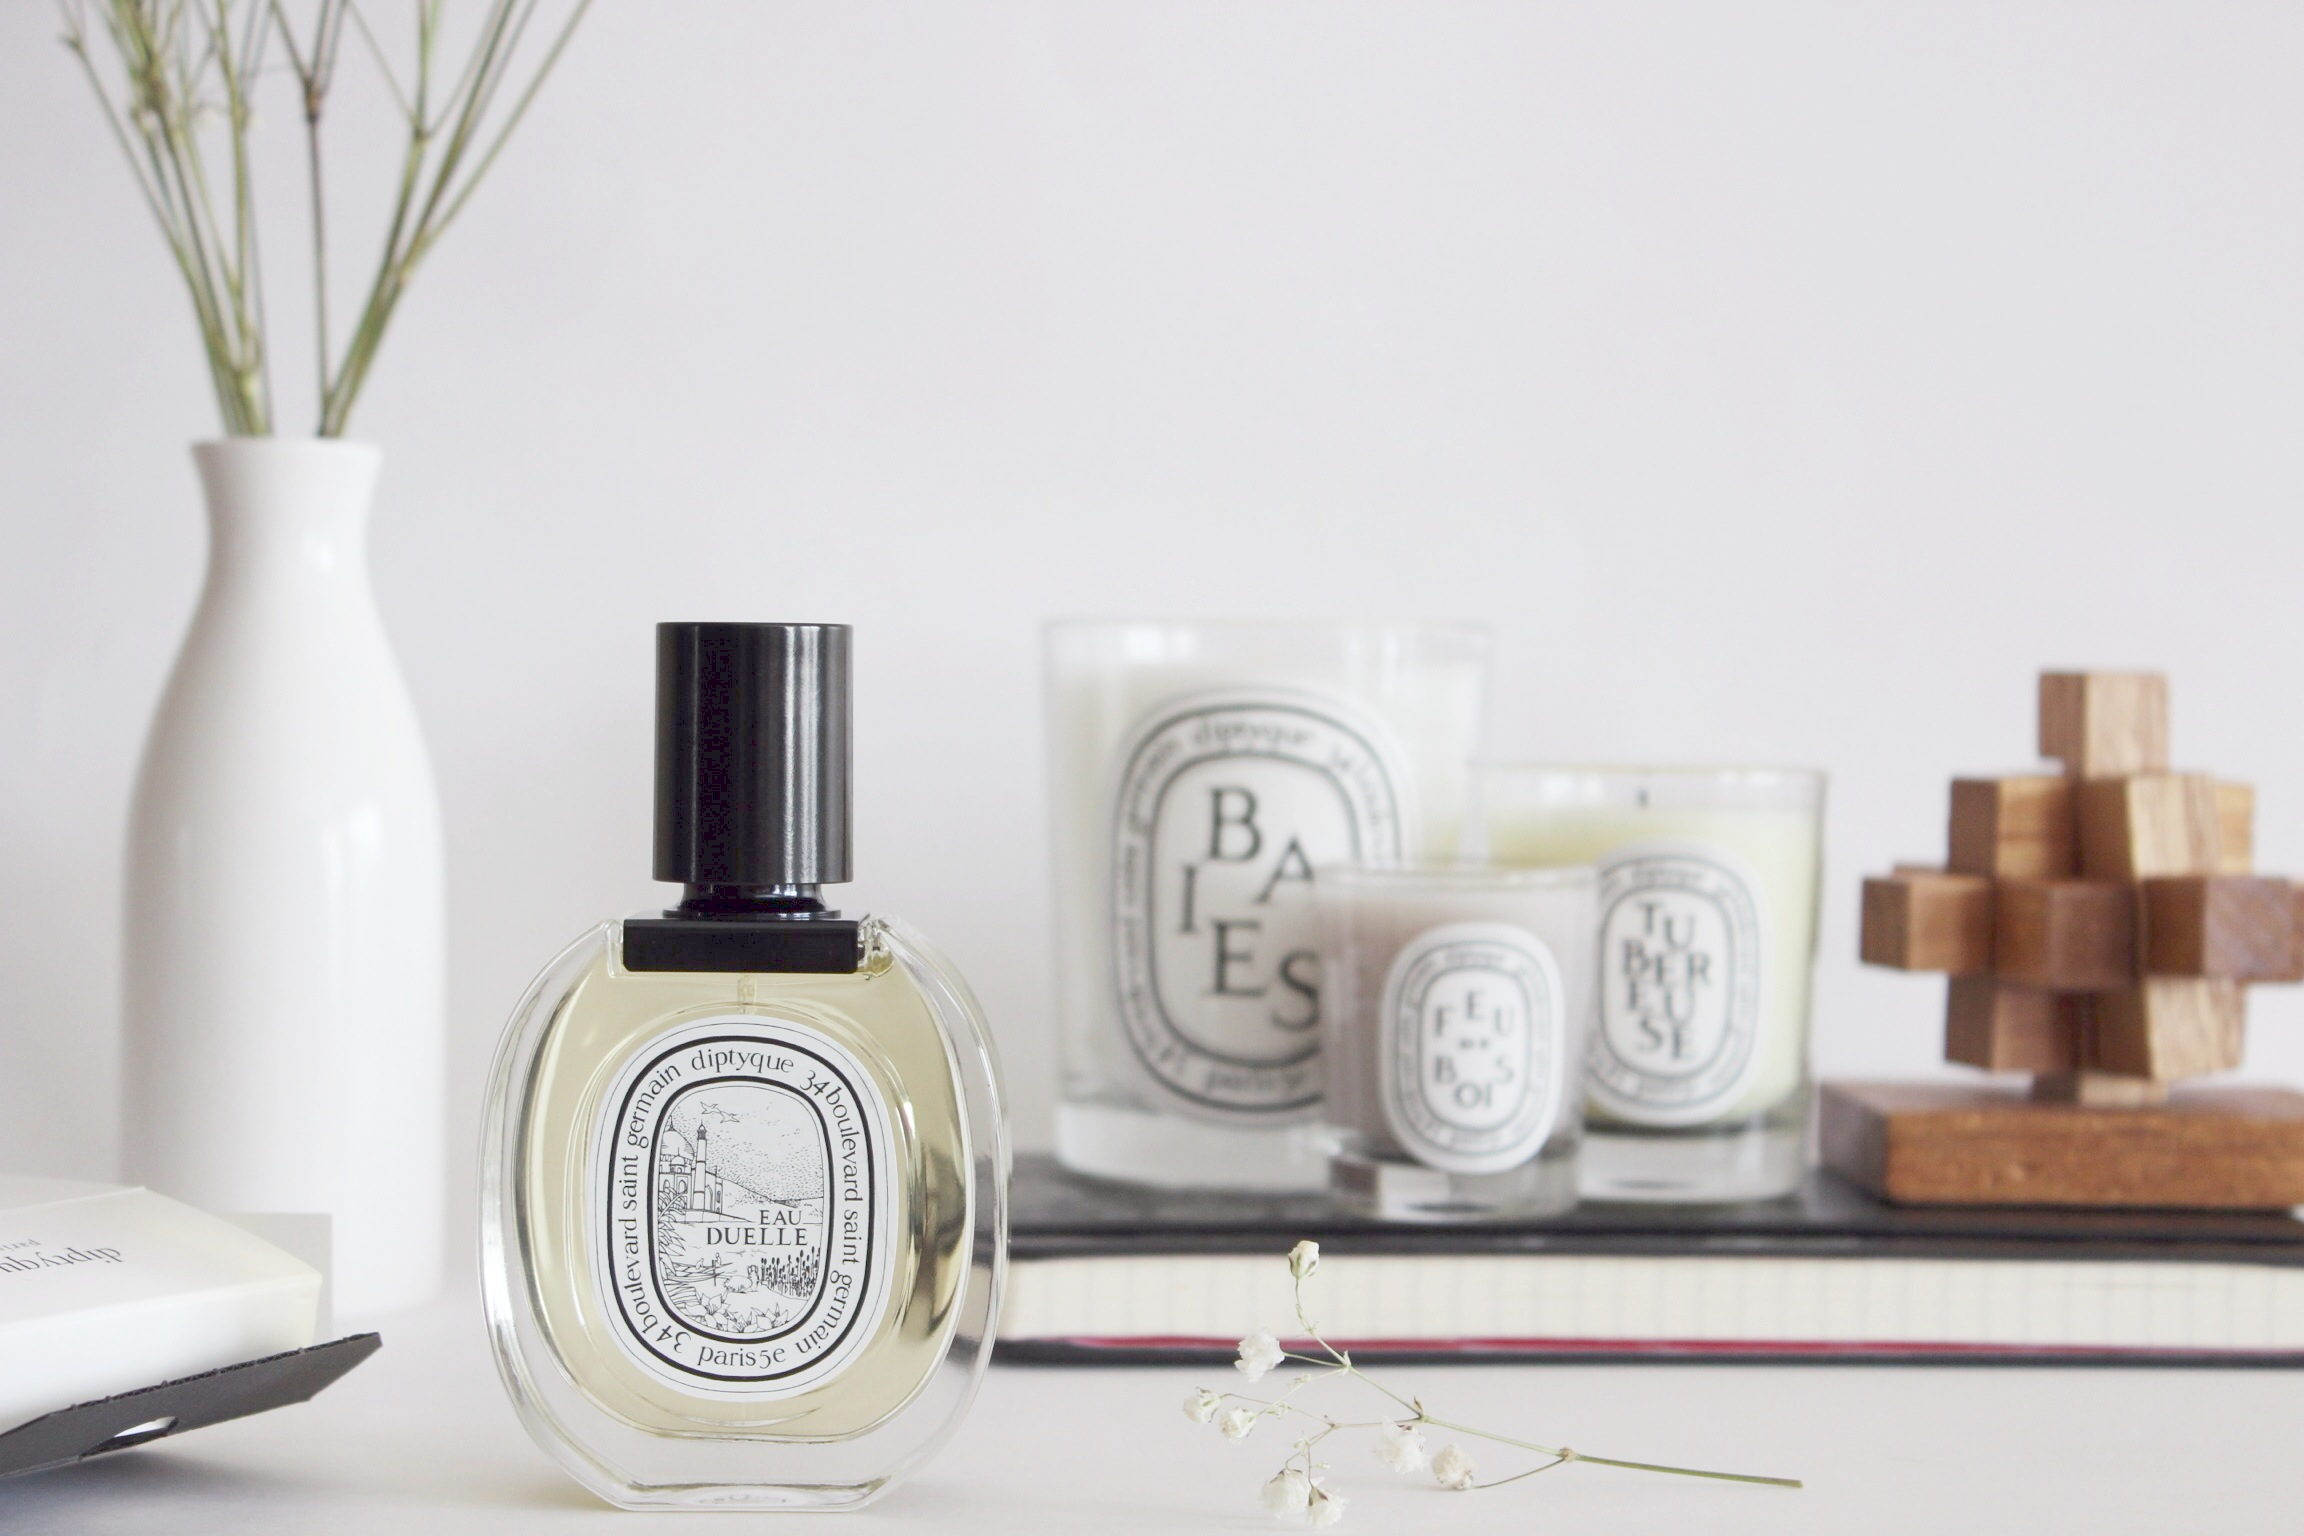 Diptyque Style Domination Ottawa Fashion Blogger Christmas Wishlist